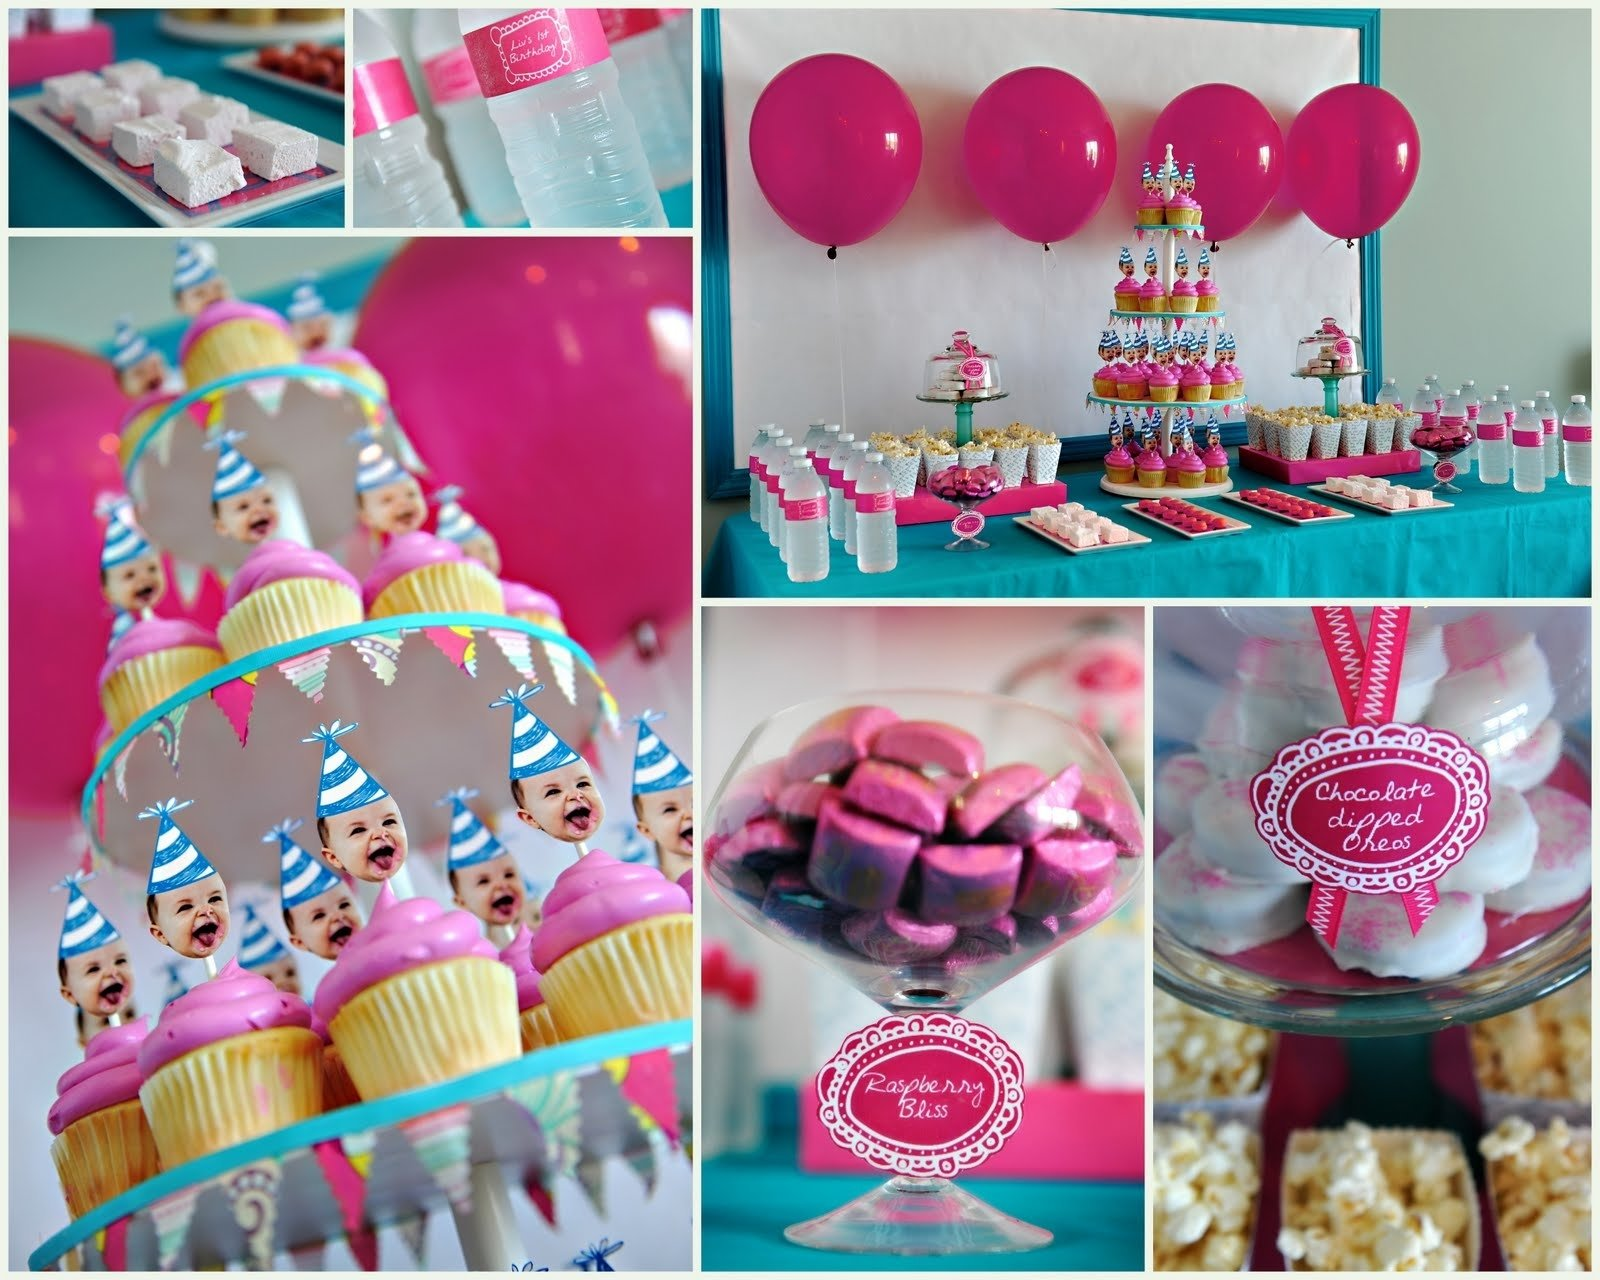 10 Attractive Party Ideas For A 1 Year Old themes birthday a 1 year old birthday party ideas plus 1 year old 2